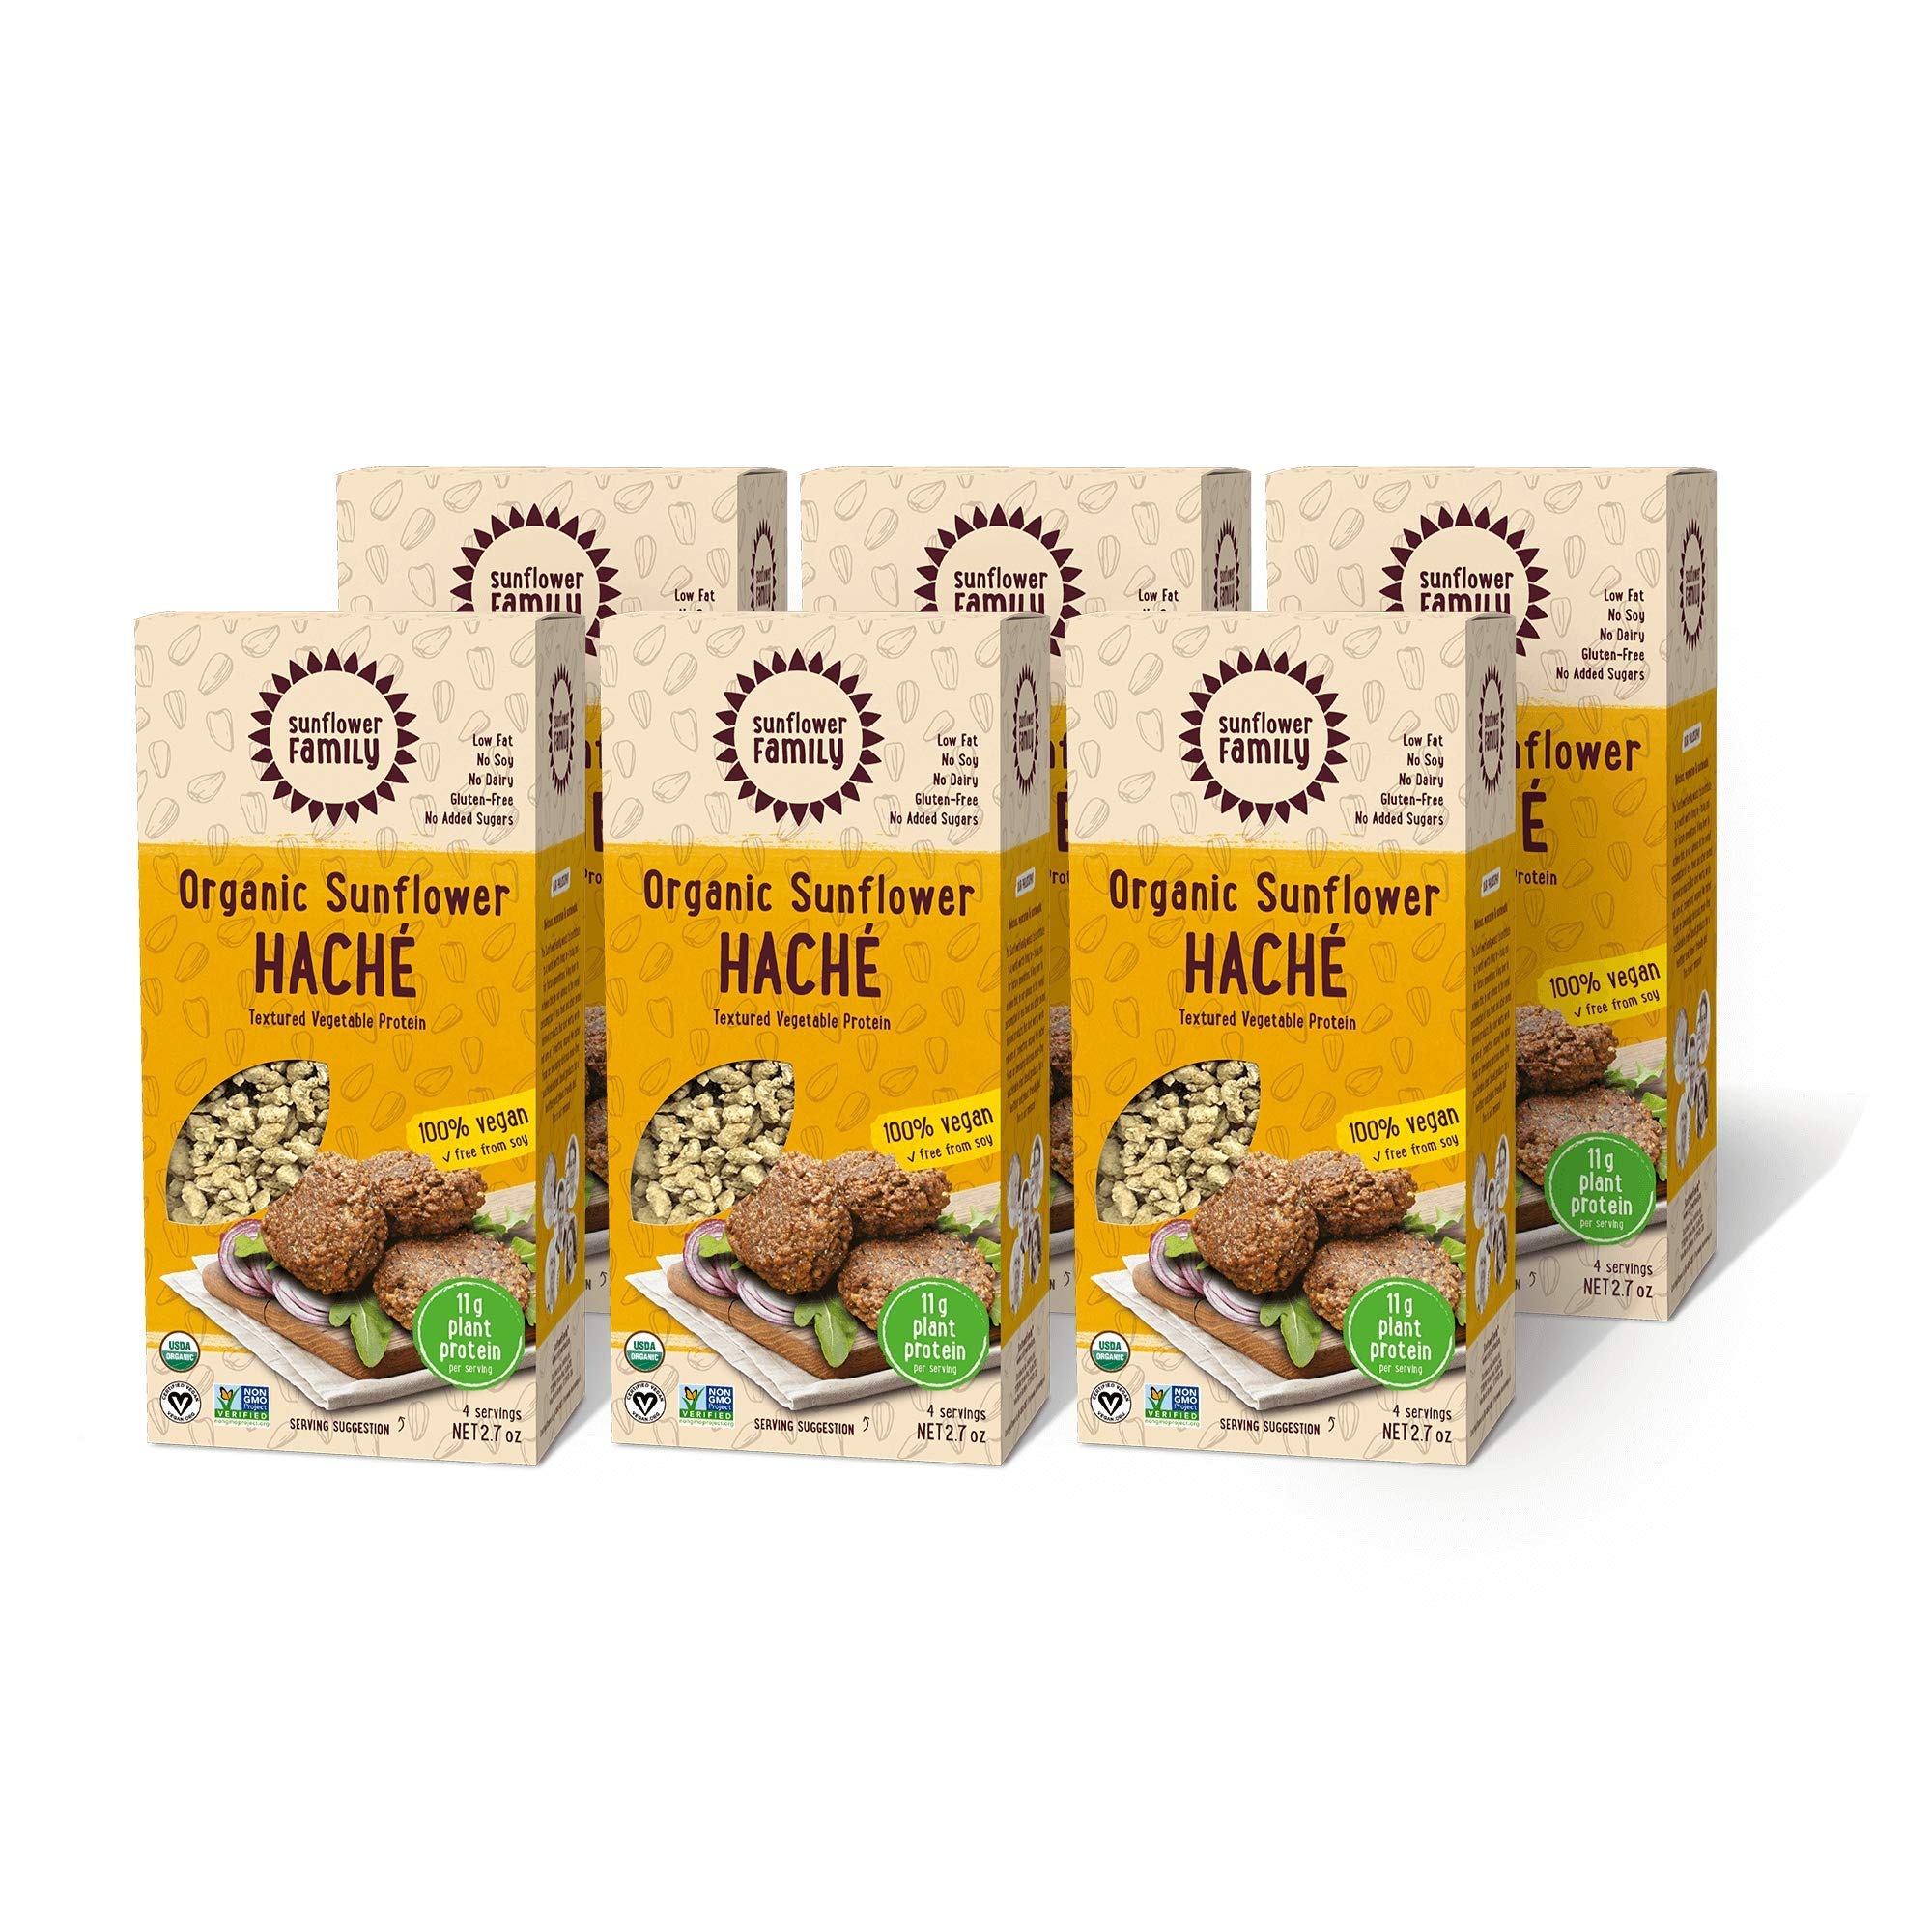 6-Pack Organic Sunflower Haché - Single-Ingredient Meat Substitute - Gluten, Soy and Dairy Free by SunflowerFamily (Image #1)